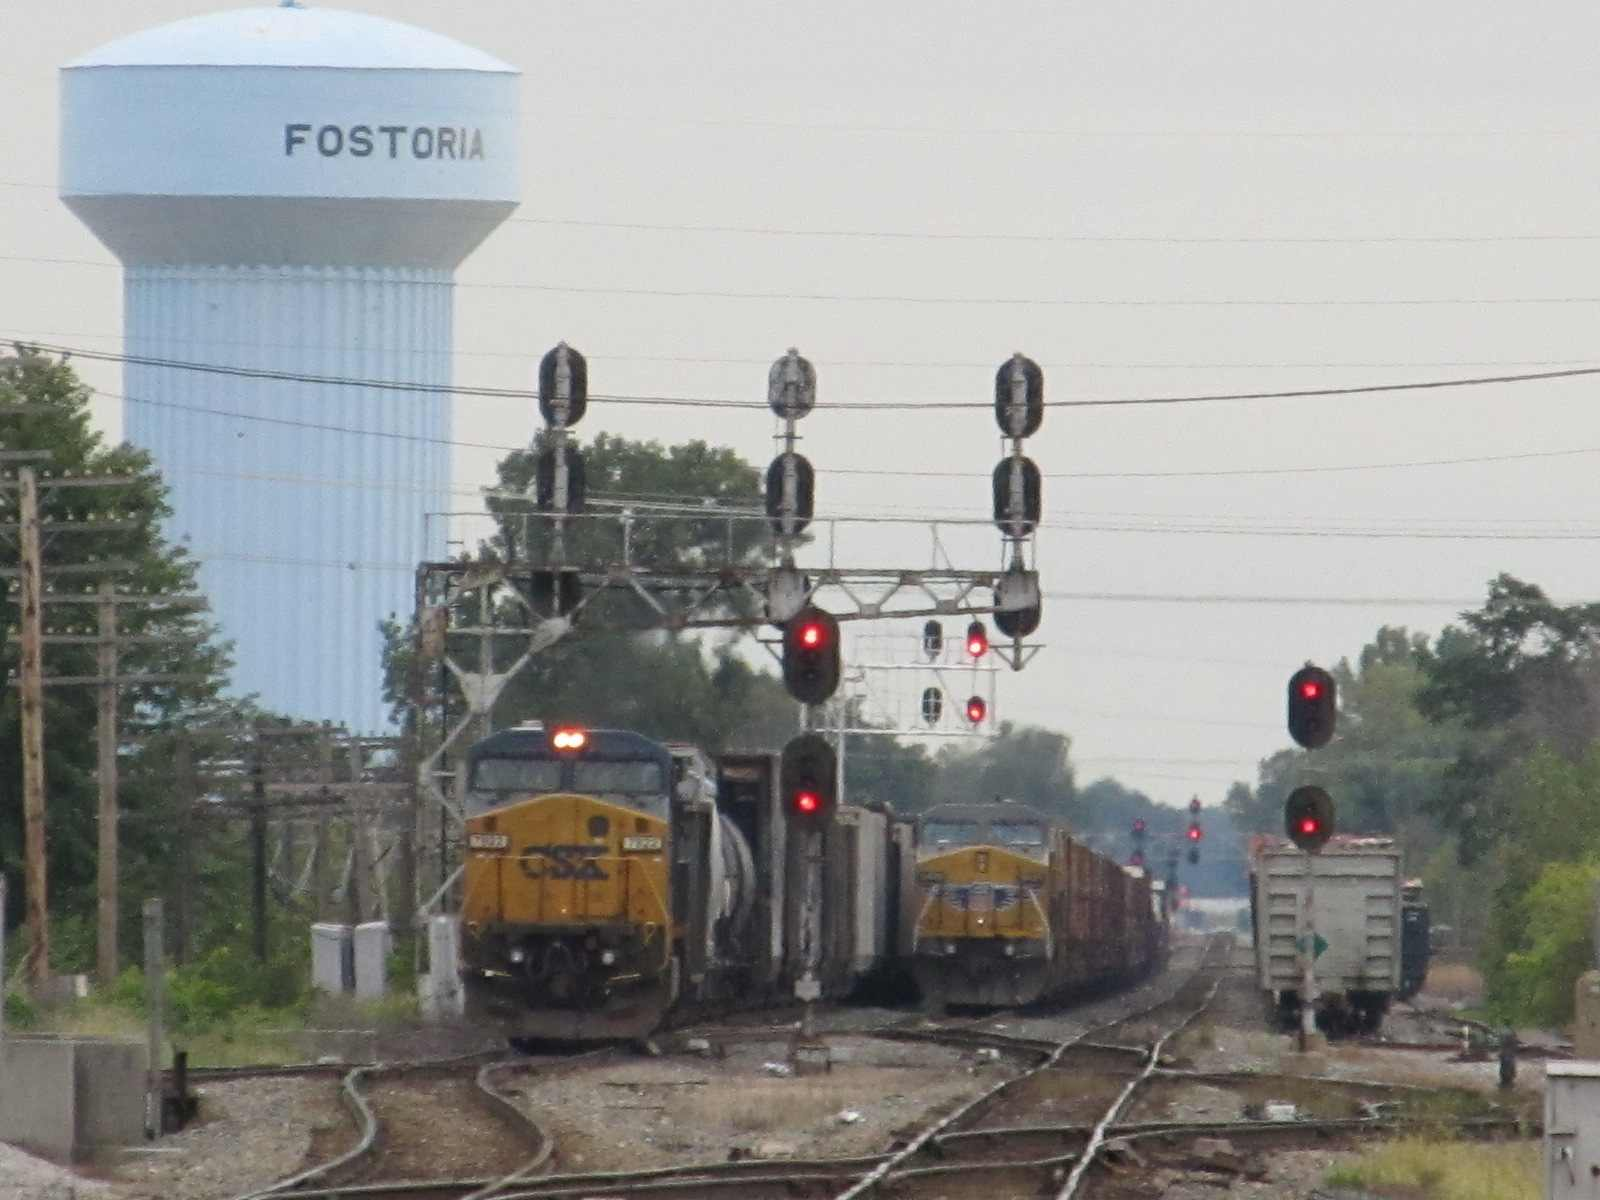 Fostoria (OH) United States  city photos : Fostoria OH Railfan Guide